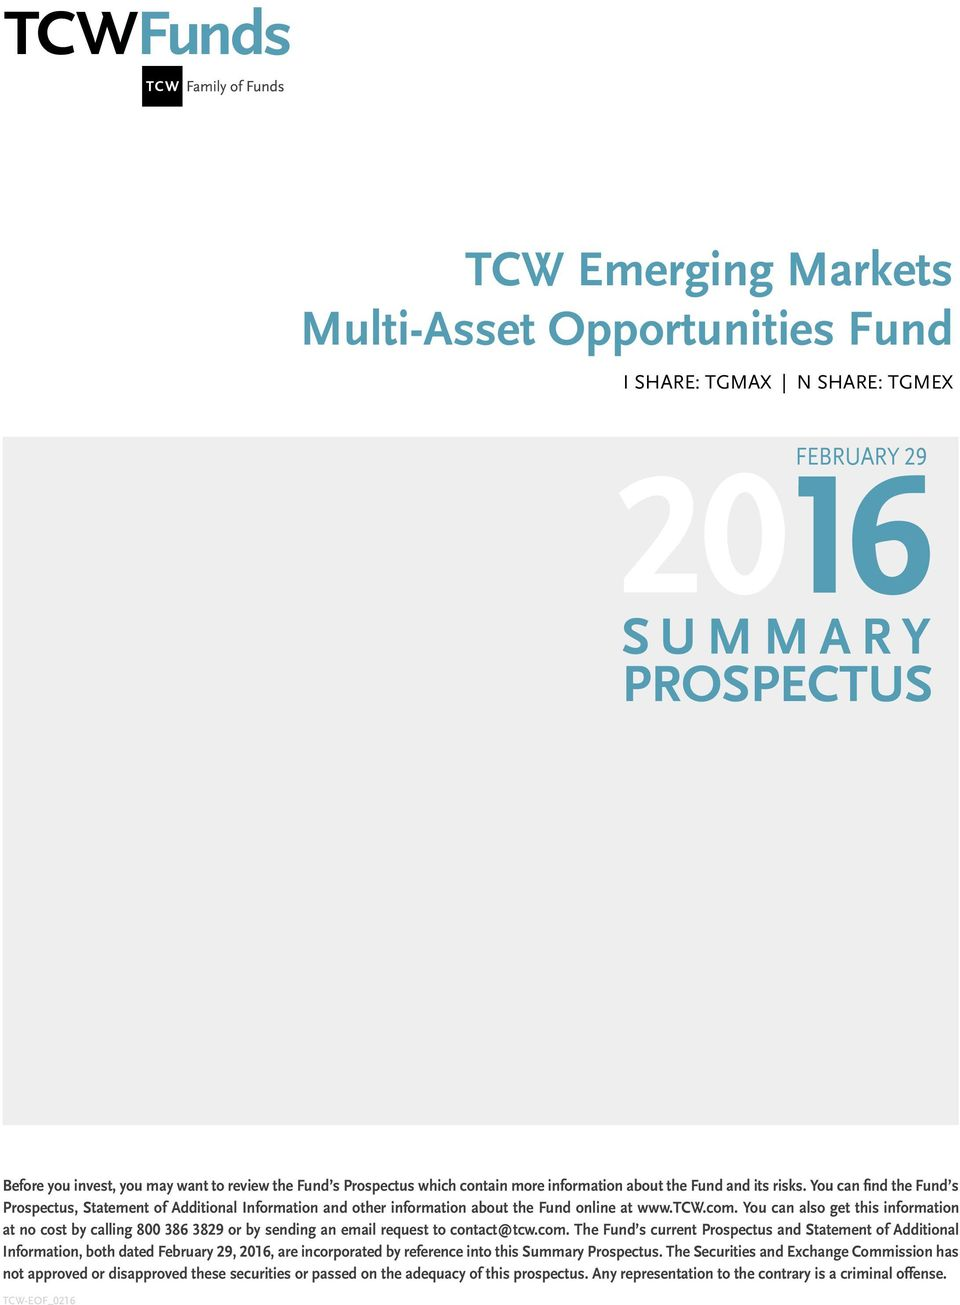 You can also get this information at no cost by calling 800 386 3829 or by sending an email request to contact@tcw.com.